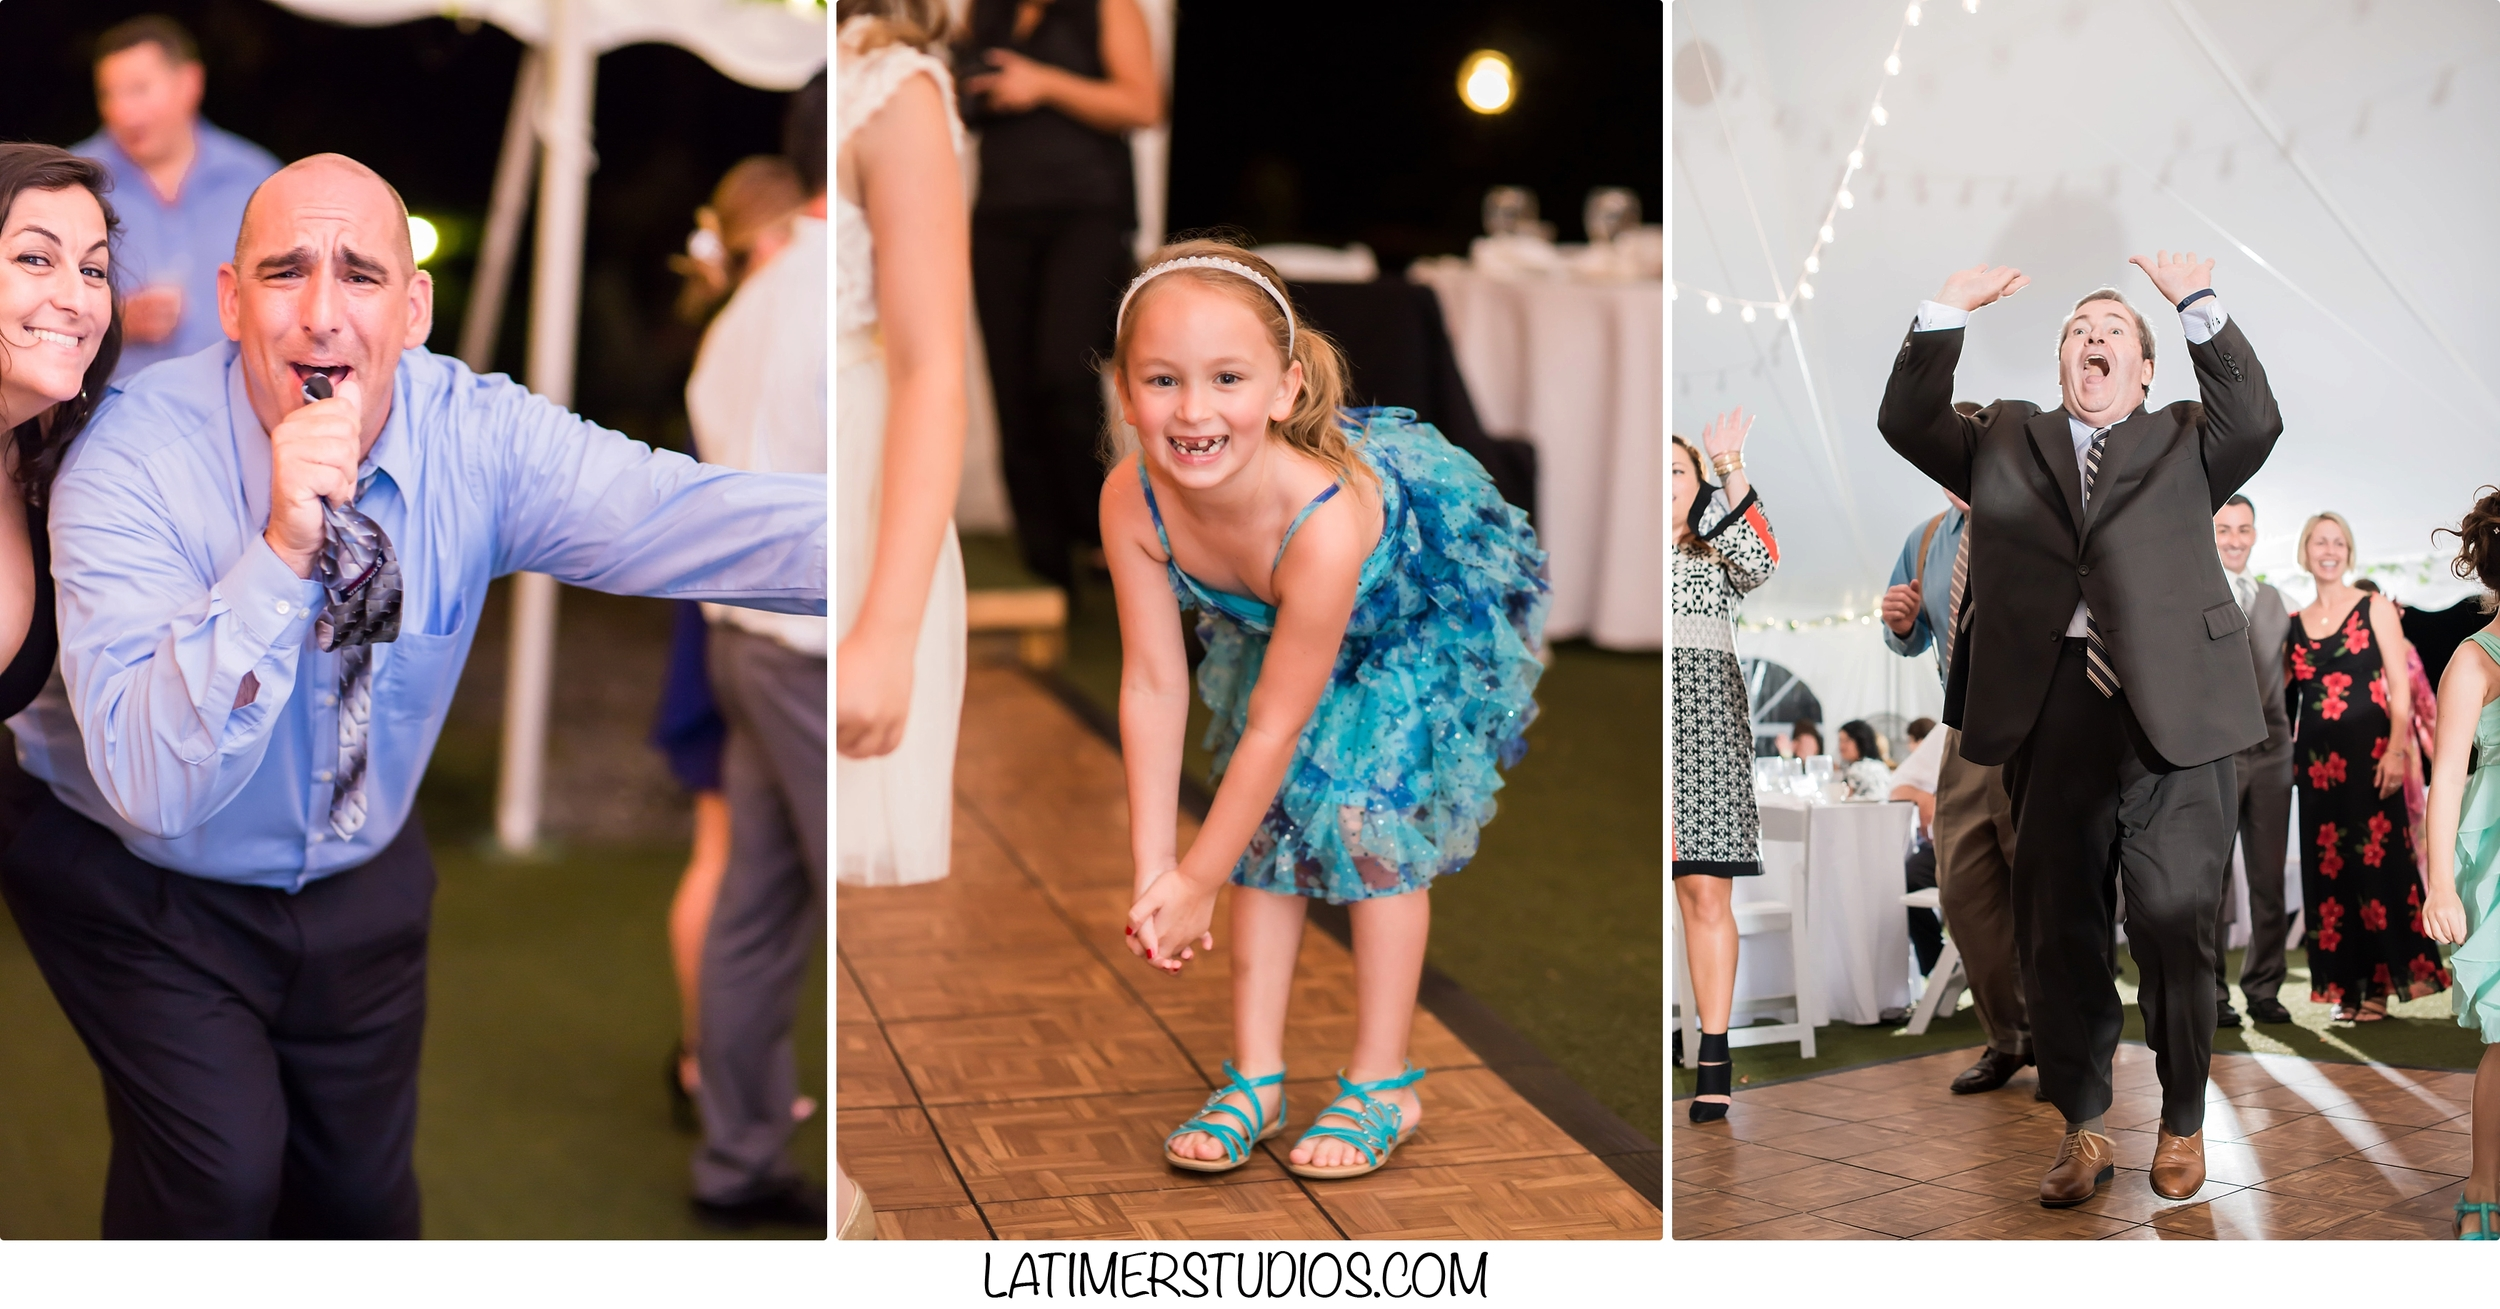 Latimer Studios Photography capturing  dancing at a wedding at Mile Away Restaurant in Milford NH